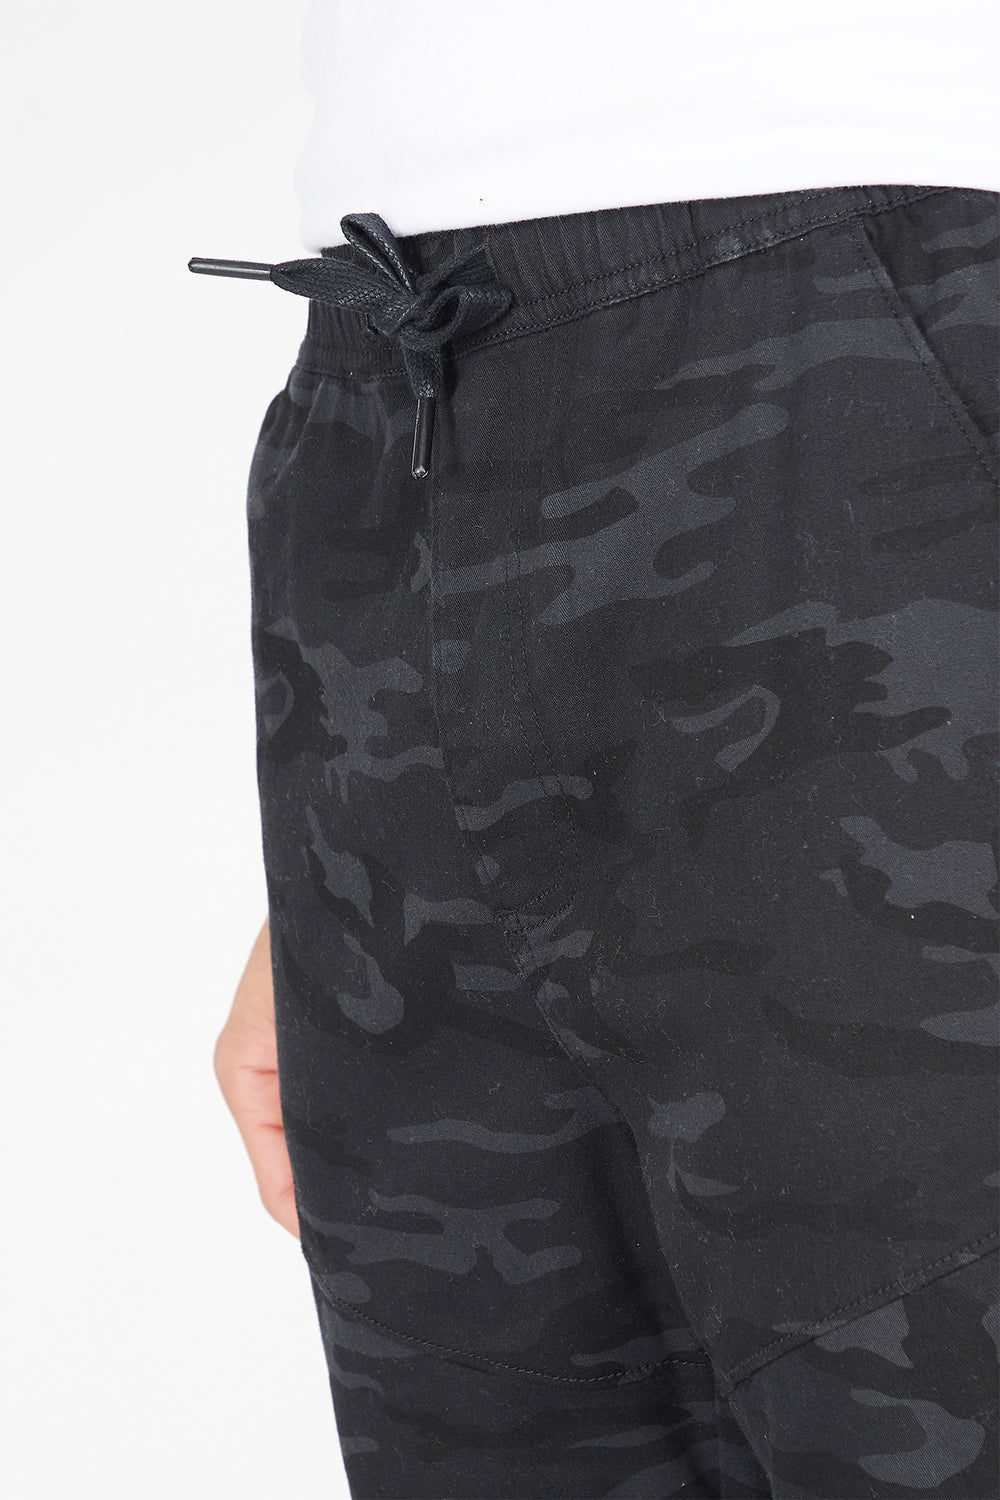 Printed Moto Ruched Zip Jogger Black with White